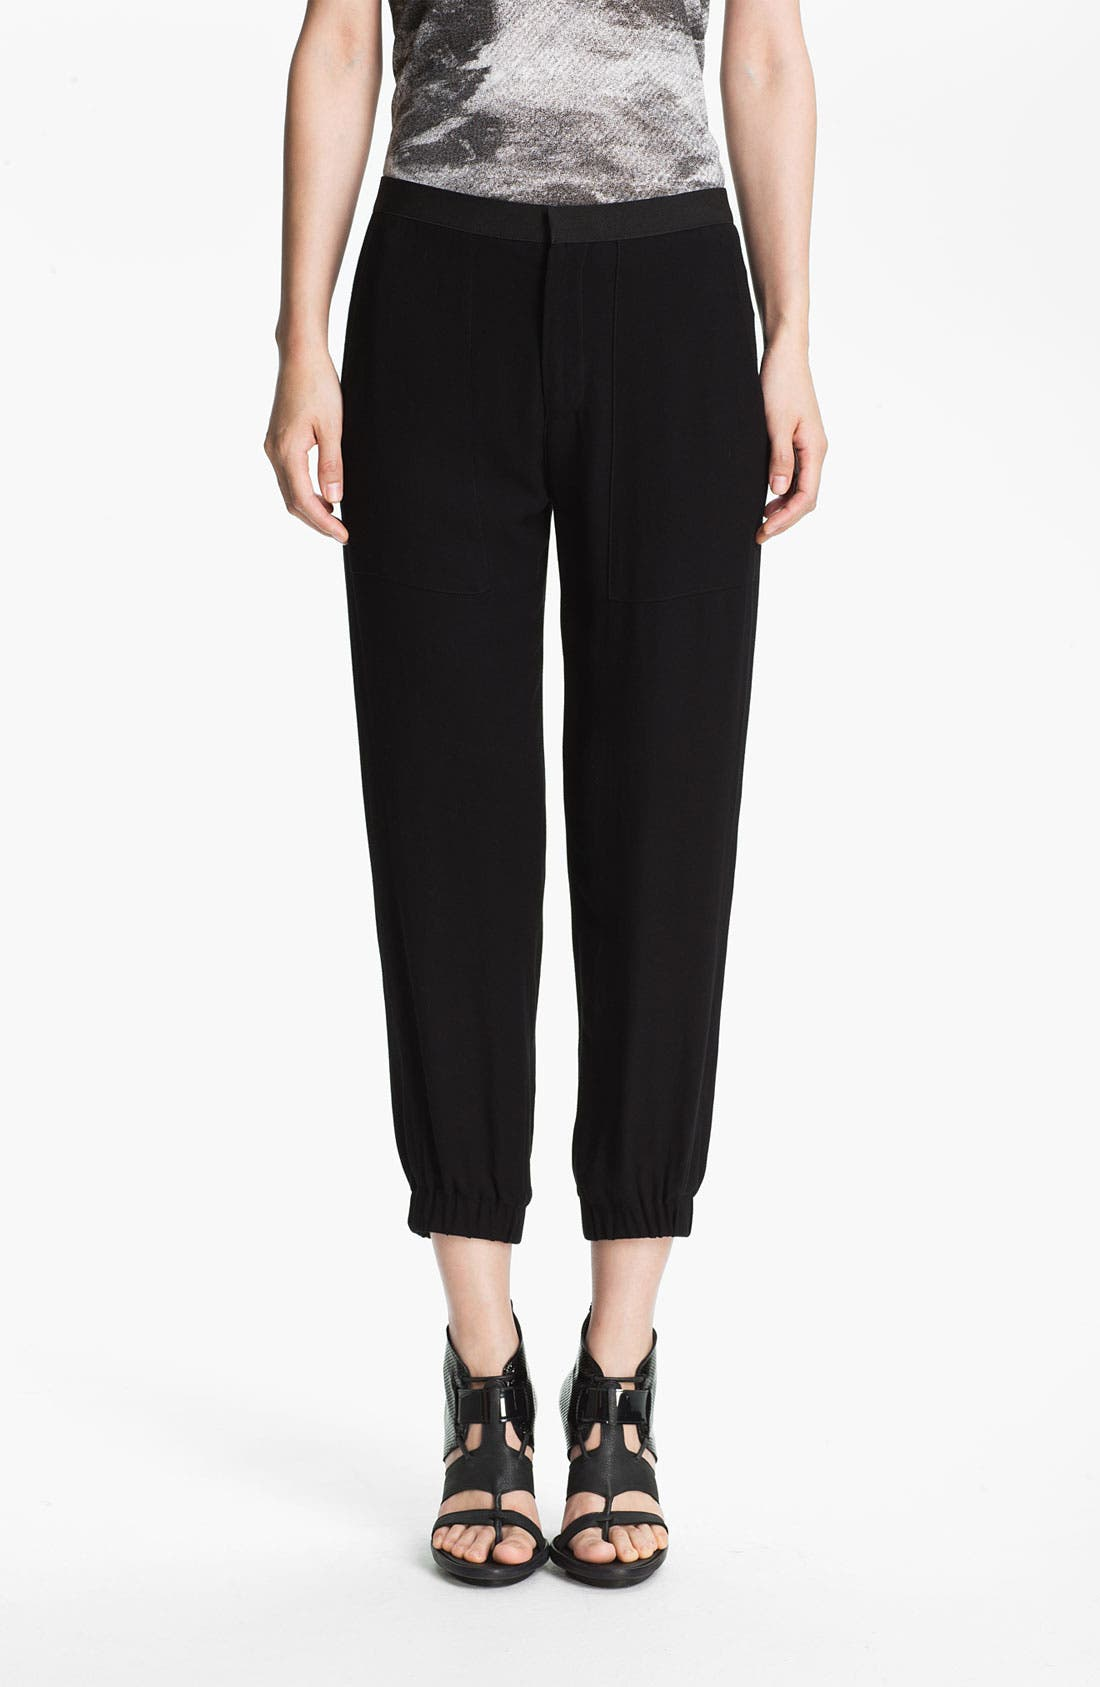 Alternate Image 1 Selected - HELMUT Helmut Lang 'Flash' Draped Pants